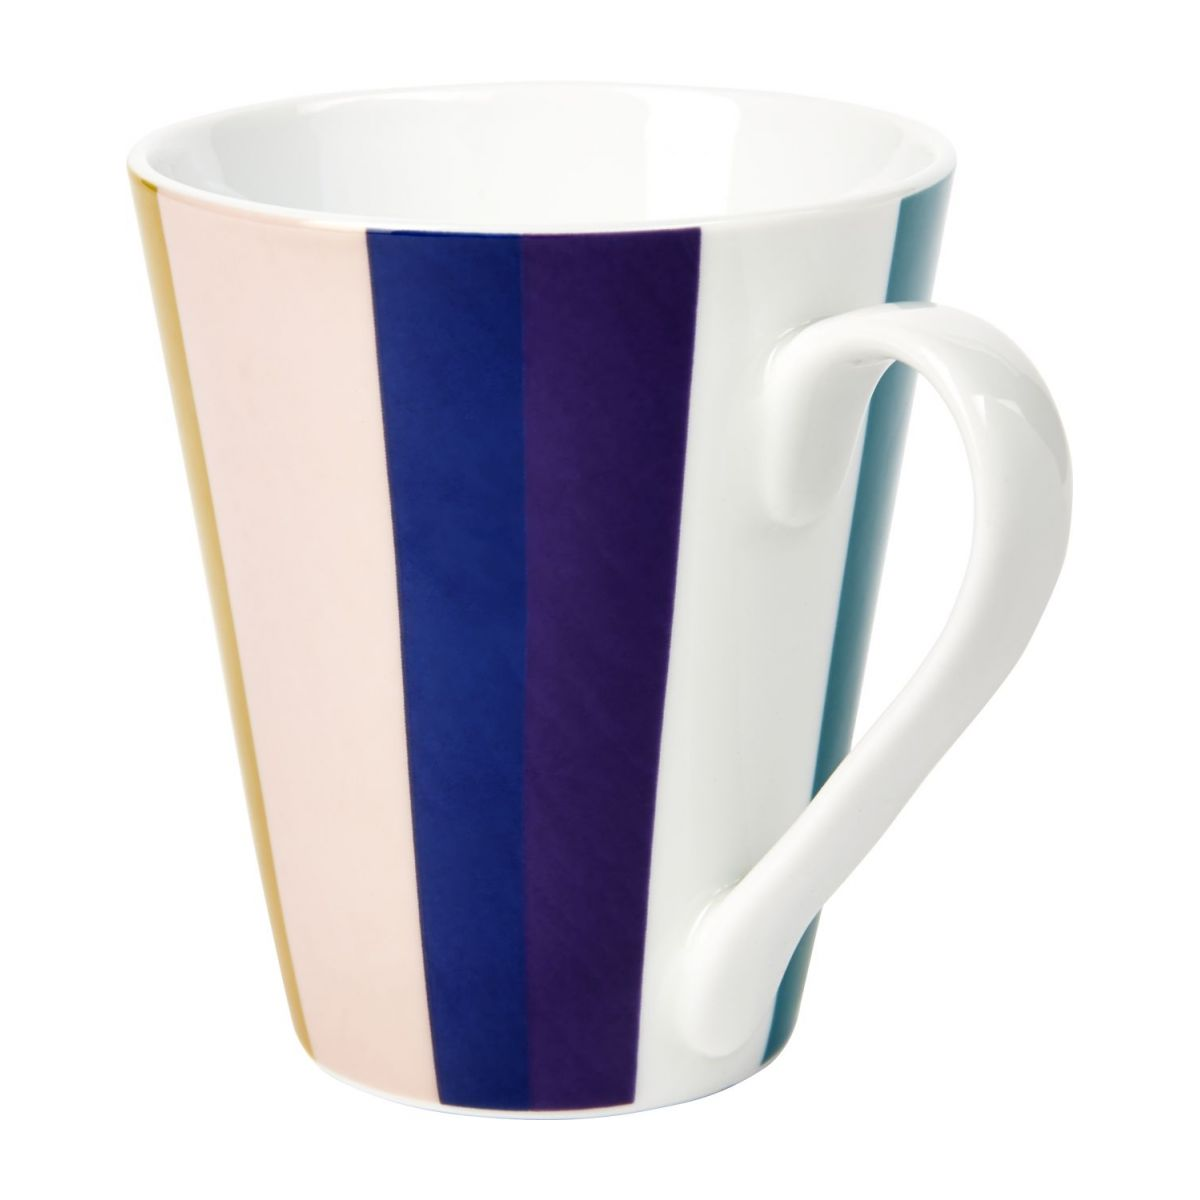 Set de 4 mugs en porcelaine n°1